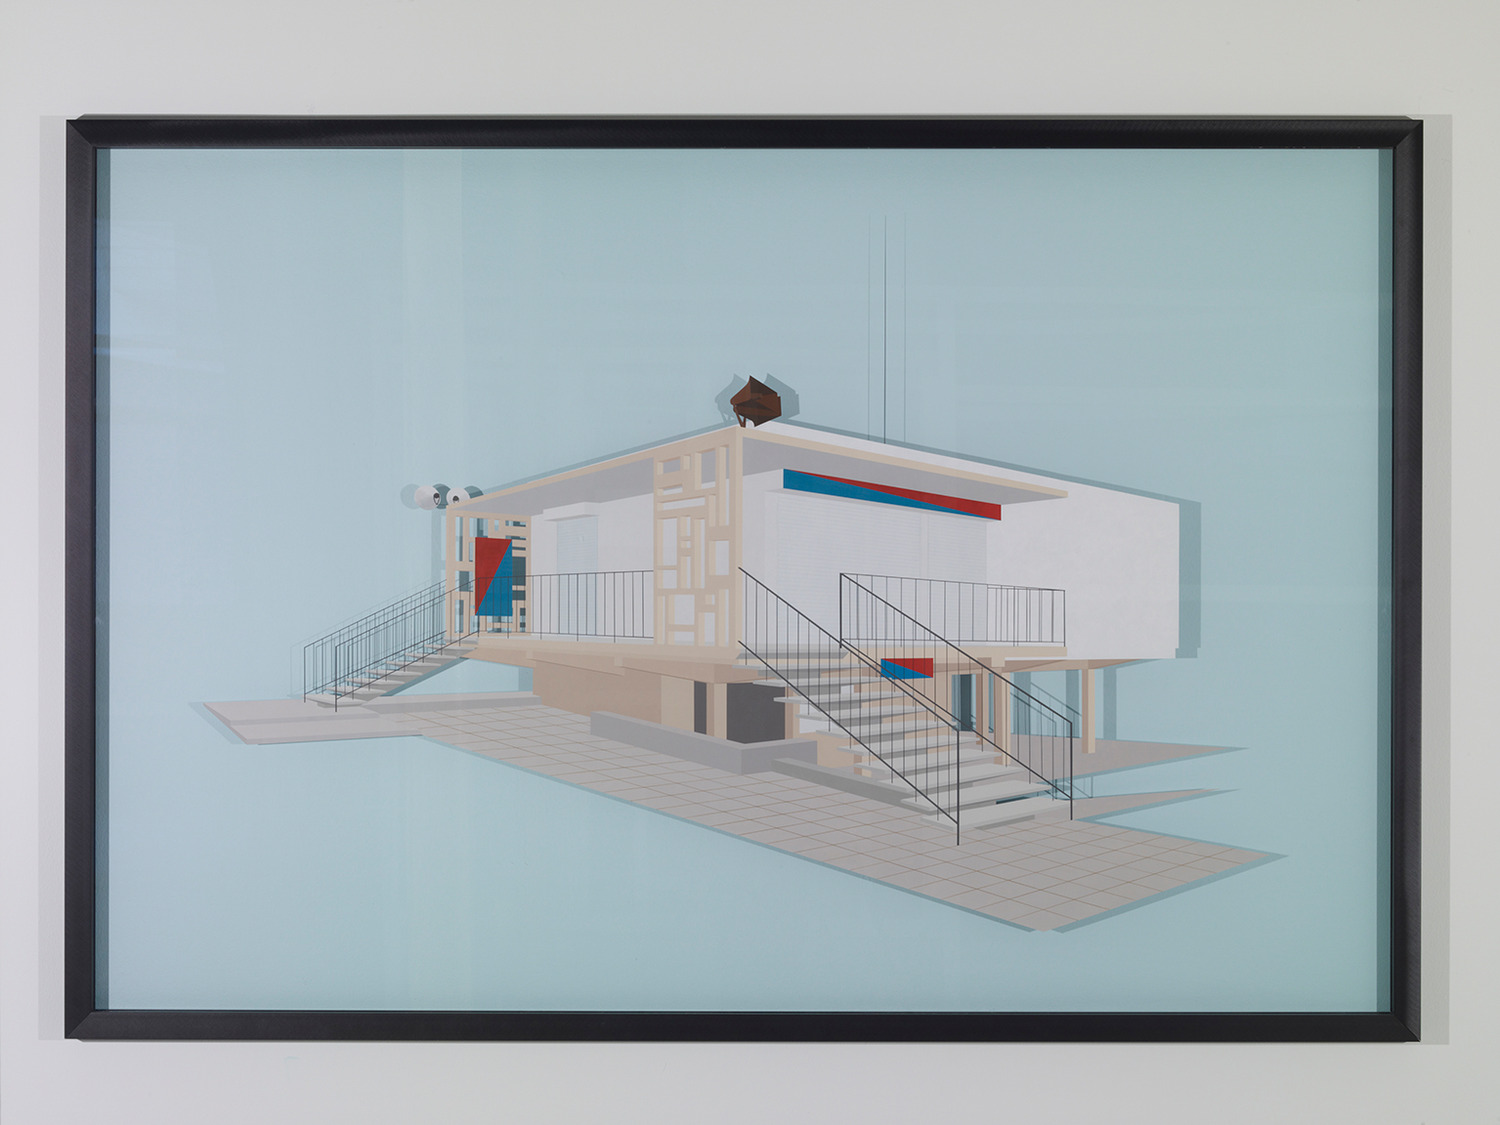 Toby Paterson, The Sports Pavilion, 2011/2012, Acrylic on Perspex, 126 x 186 x 4 cm